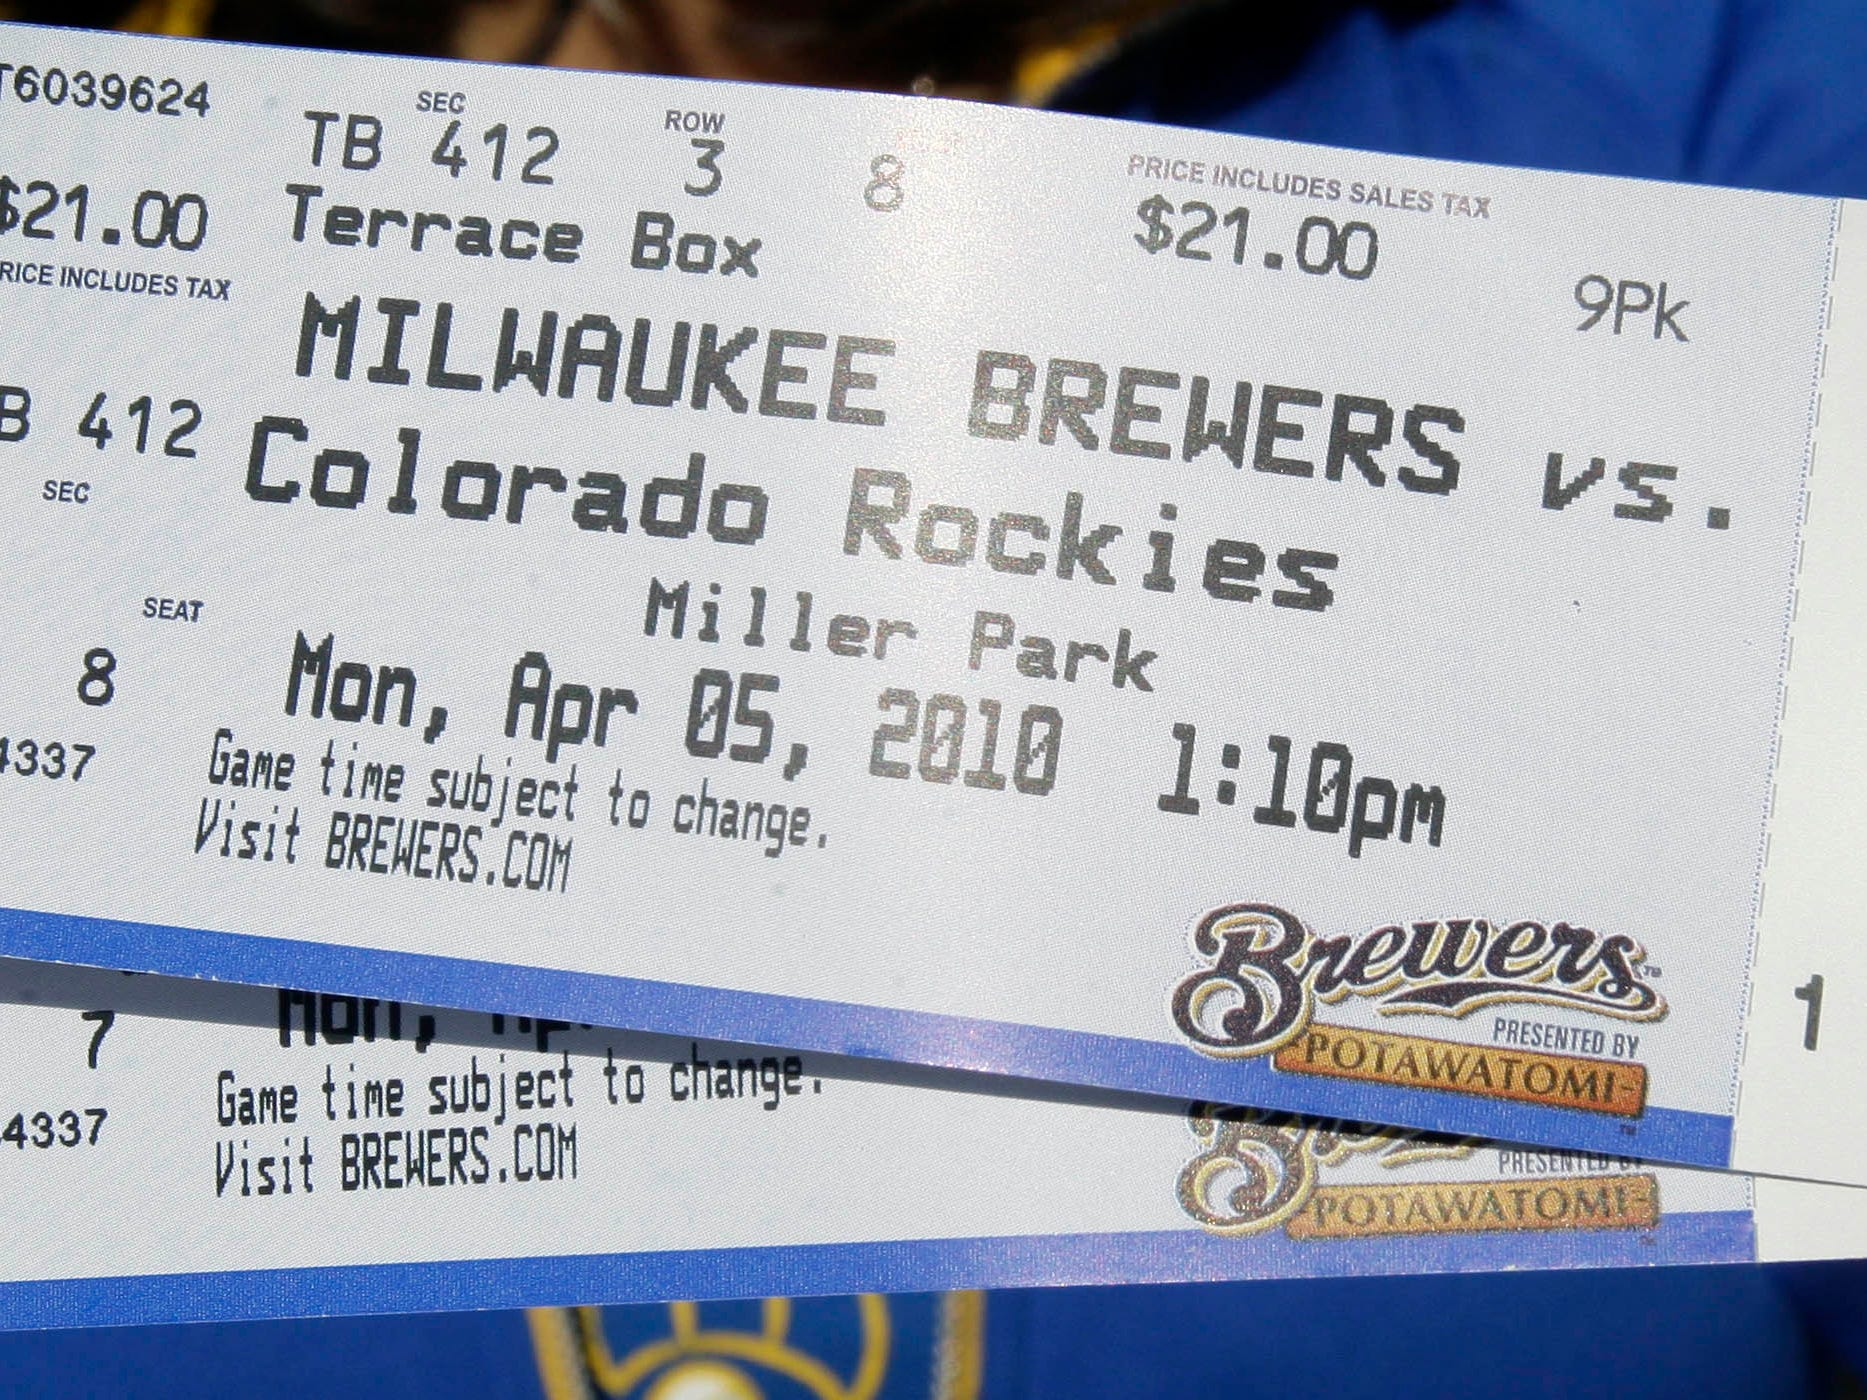 A fan displays her tickets before the Milwaukee Brewers home opener against the Colorado Rockies Monday, April 5, 2010.